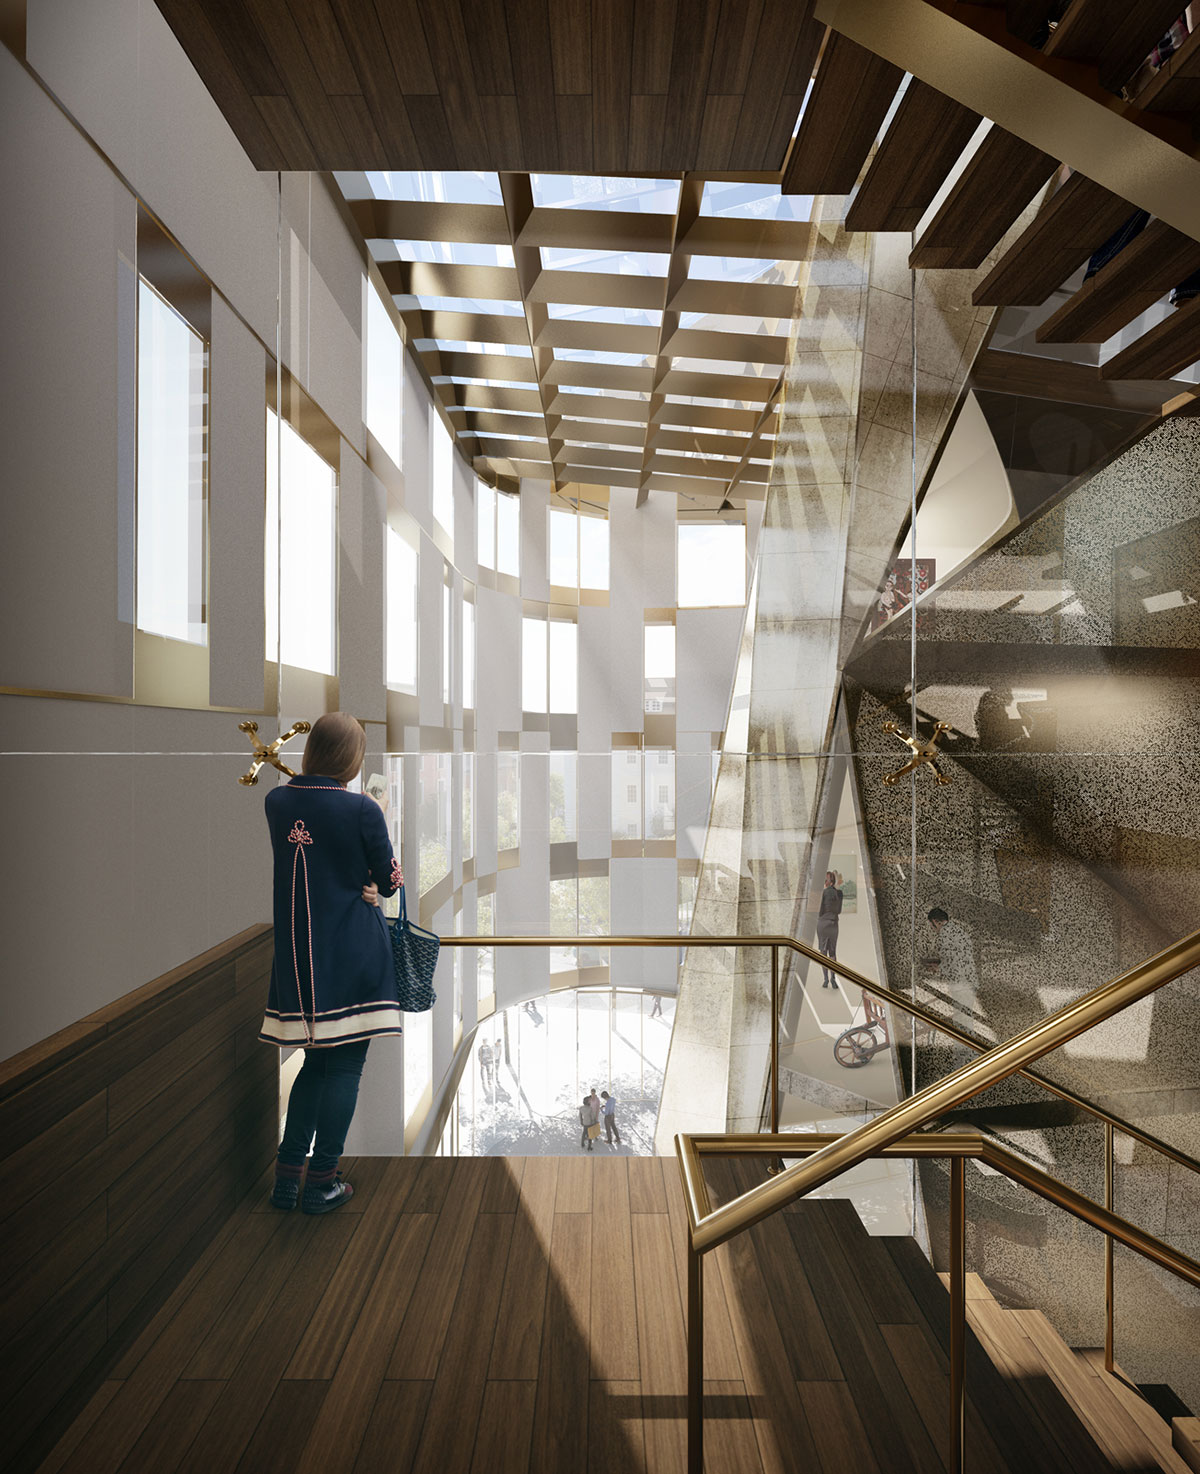 Atrium of the Museum of Etnography project located in Budapest, Hungary designed by the architecture studio Danny Forster & Architecture